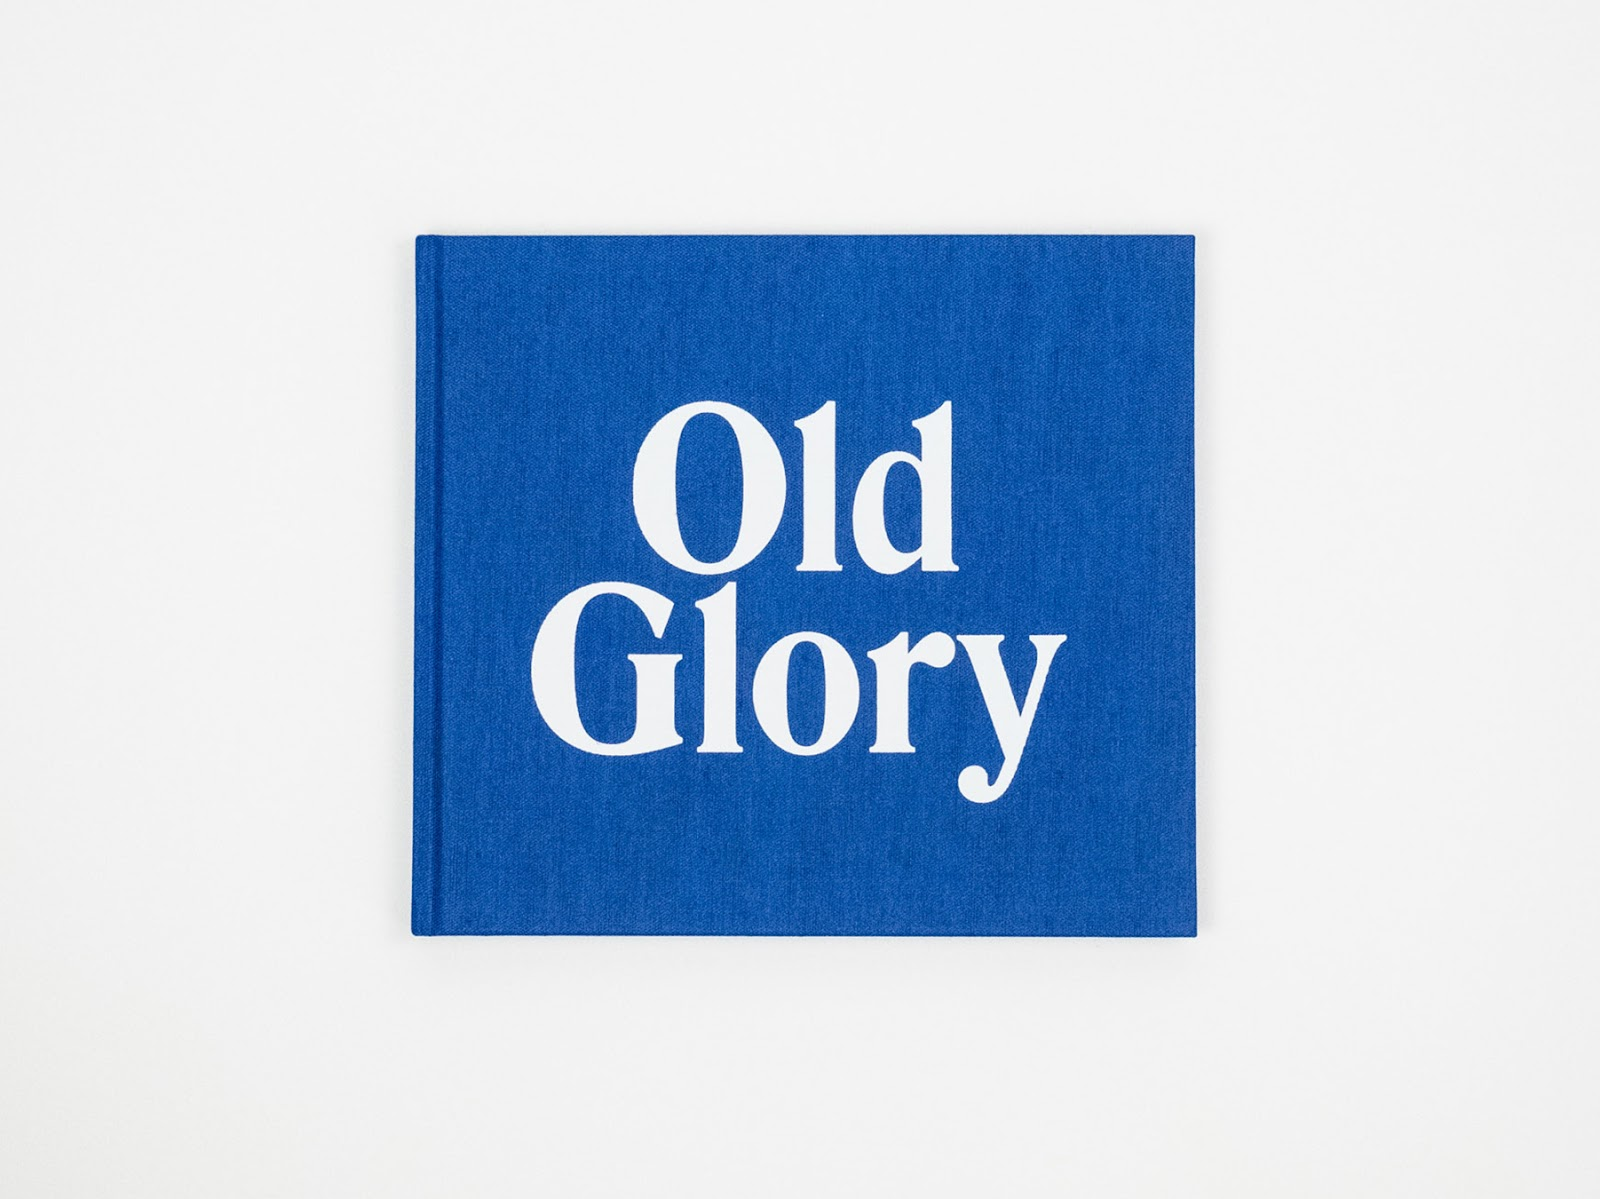 Old Glory looks at alternative designs for the American flag in the 1950s. Book cover of The Illustrated America, vol. 1; Old Glory by Pascale Georgiev, Atelier Editions, 2016.